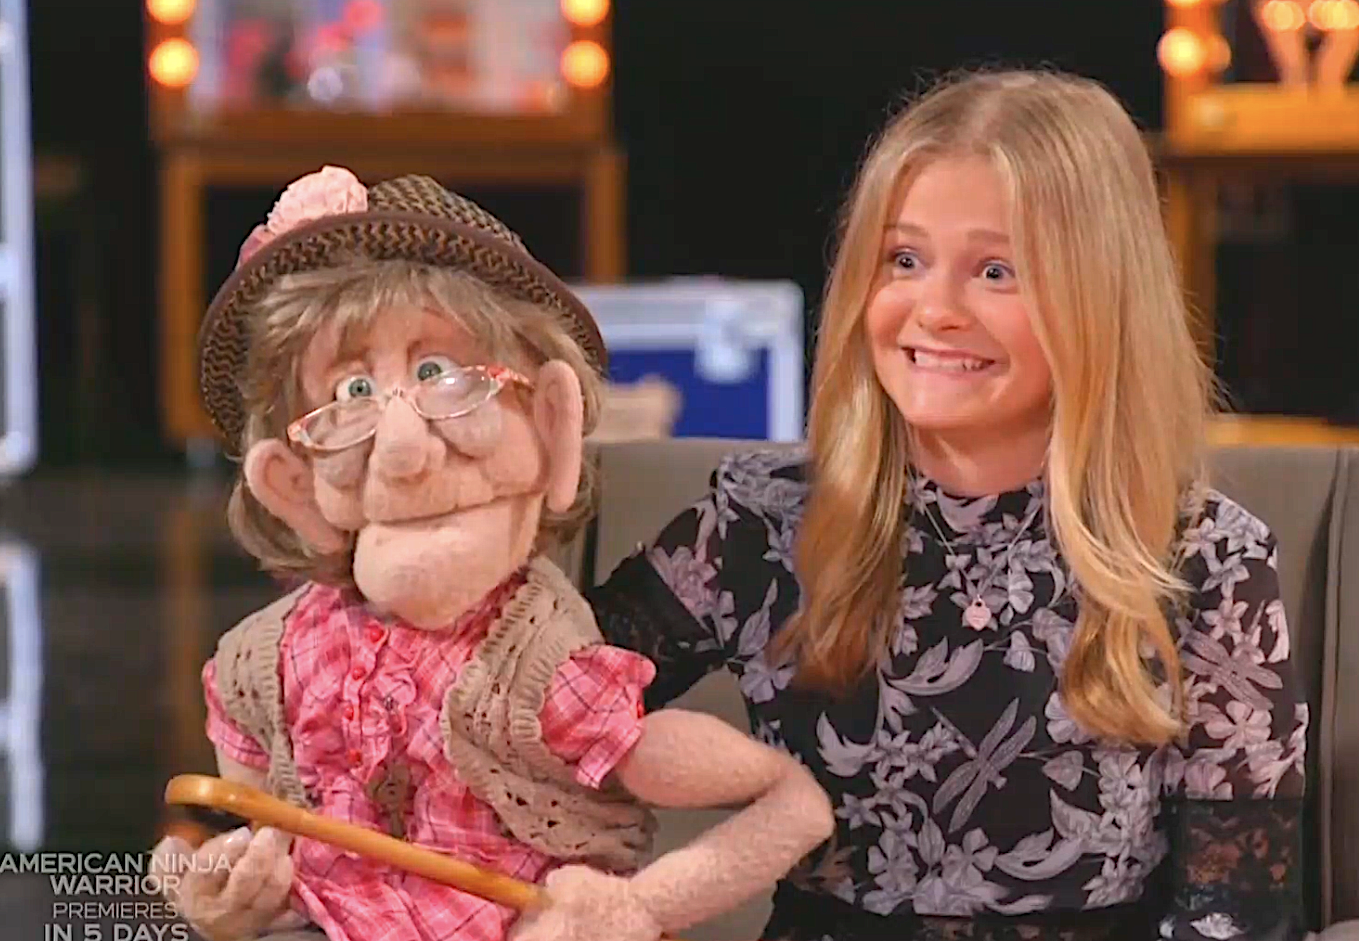 Darci Lynne politely reacts to Sofia Vergara's ventriloquism act. (Photo: NBC)